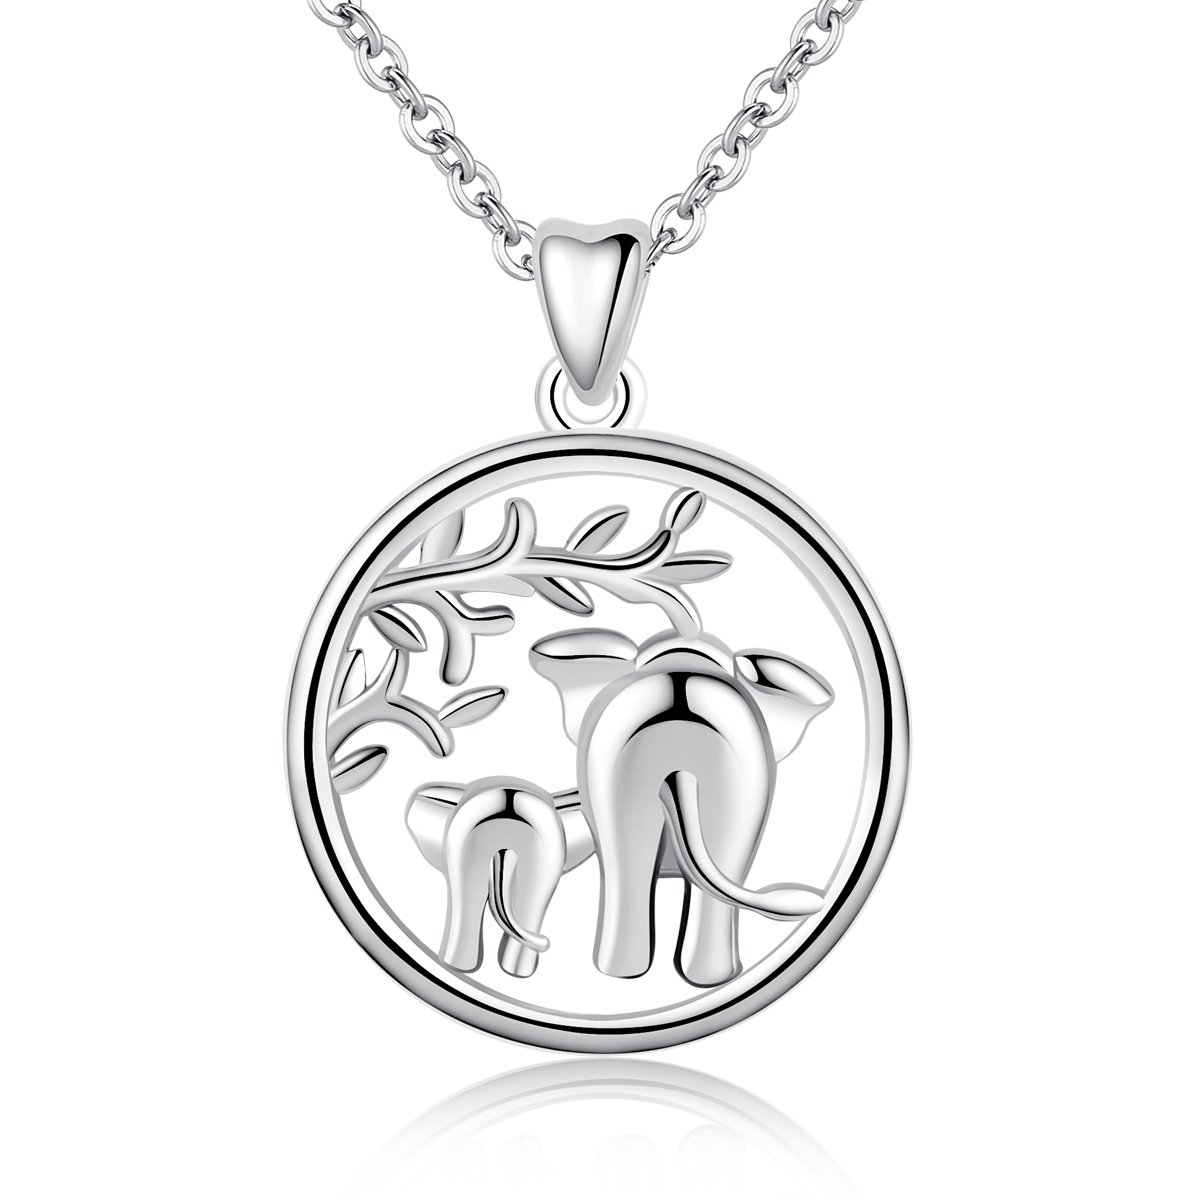 AEONSLOVE 925 Sterling Silver Lucky Elephant Family Love Forever Pendant Necklace Gift for Her Wife Mom